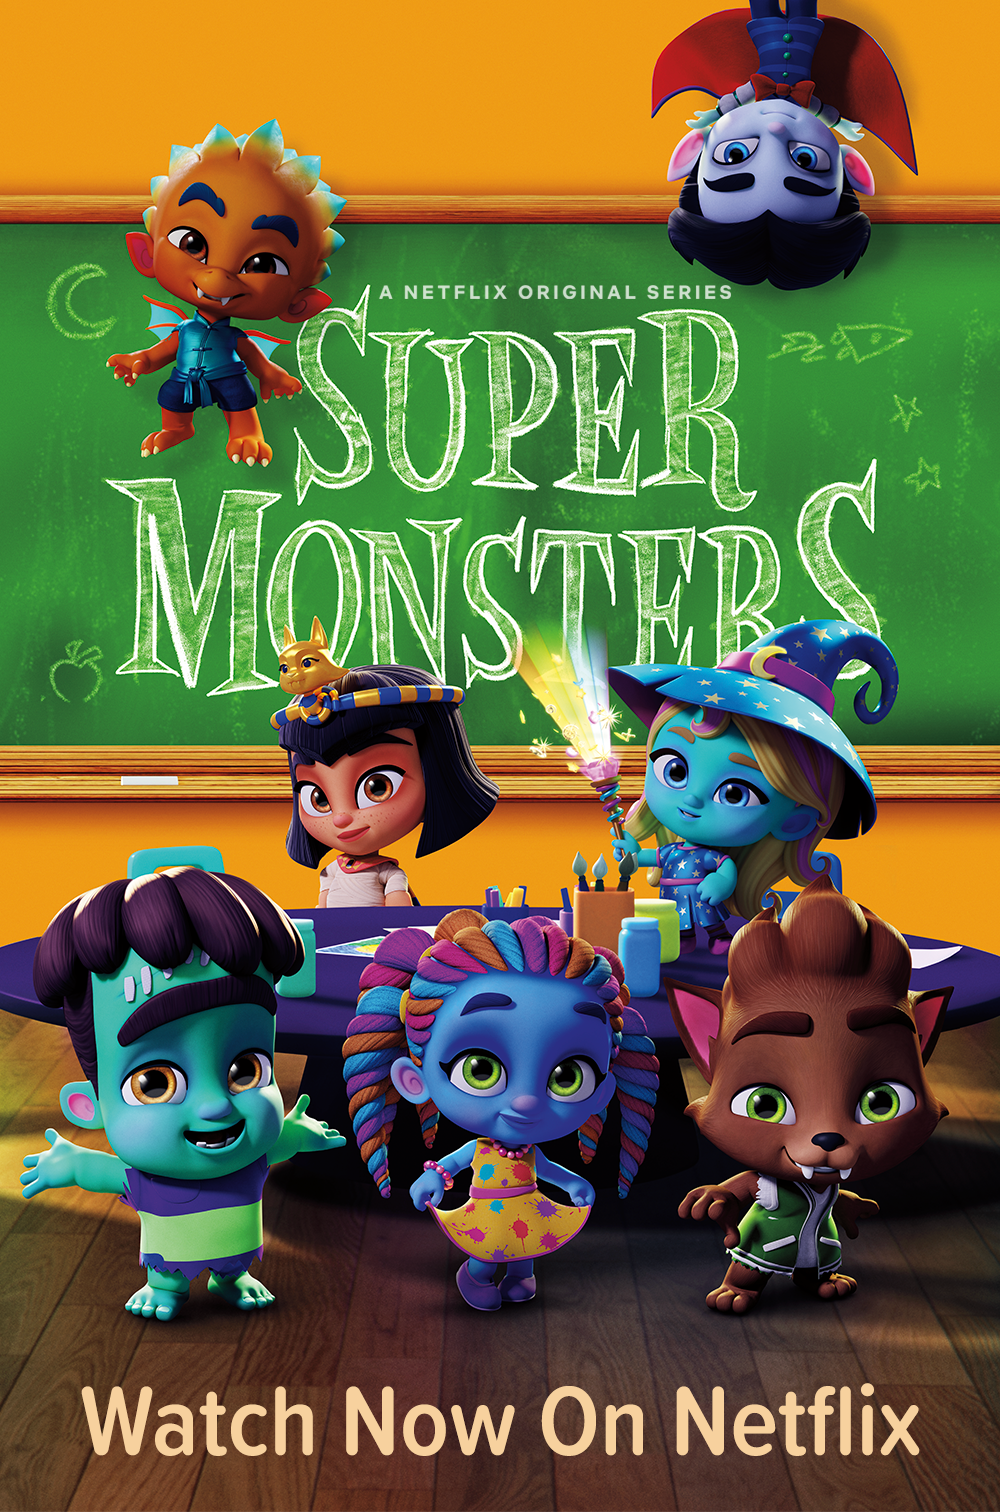 New Episodes Now Streaming Netflixsupermonsters Kids Playing Monster Birthday Parties Netflix